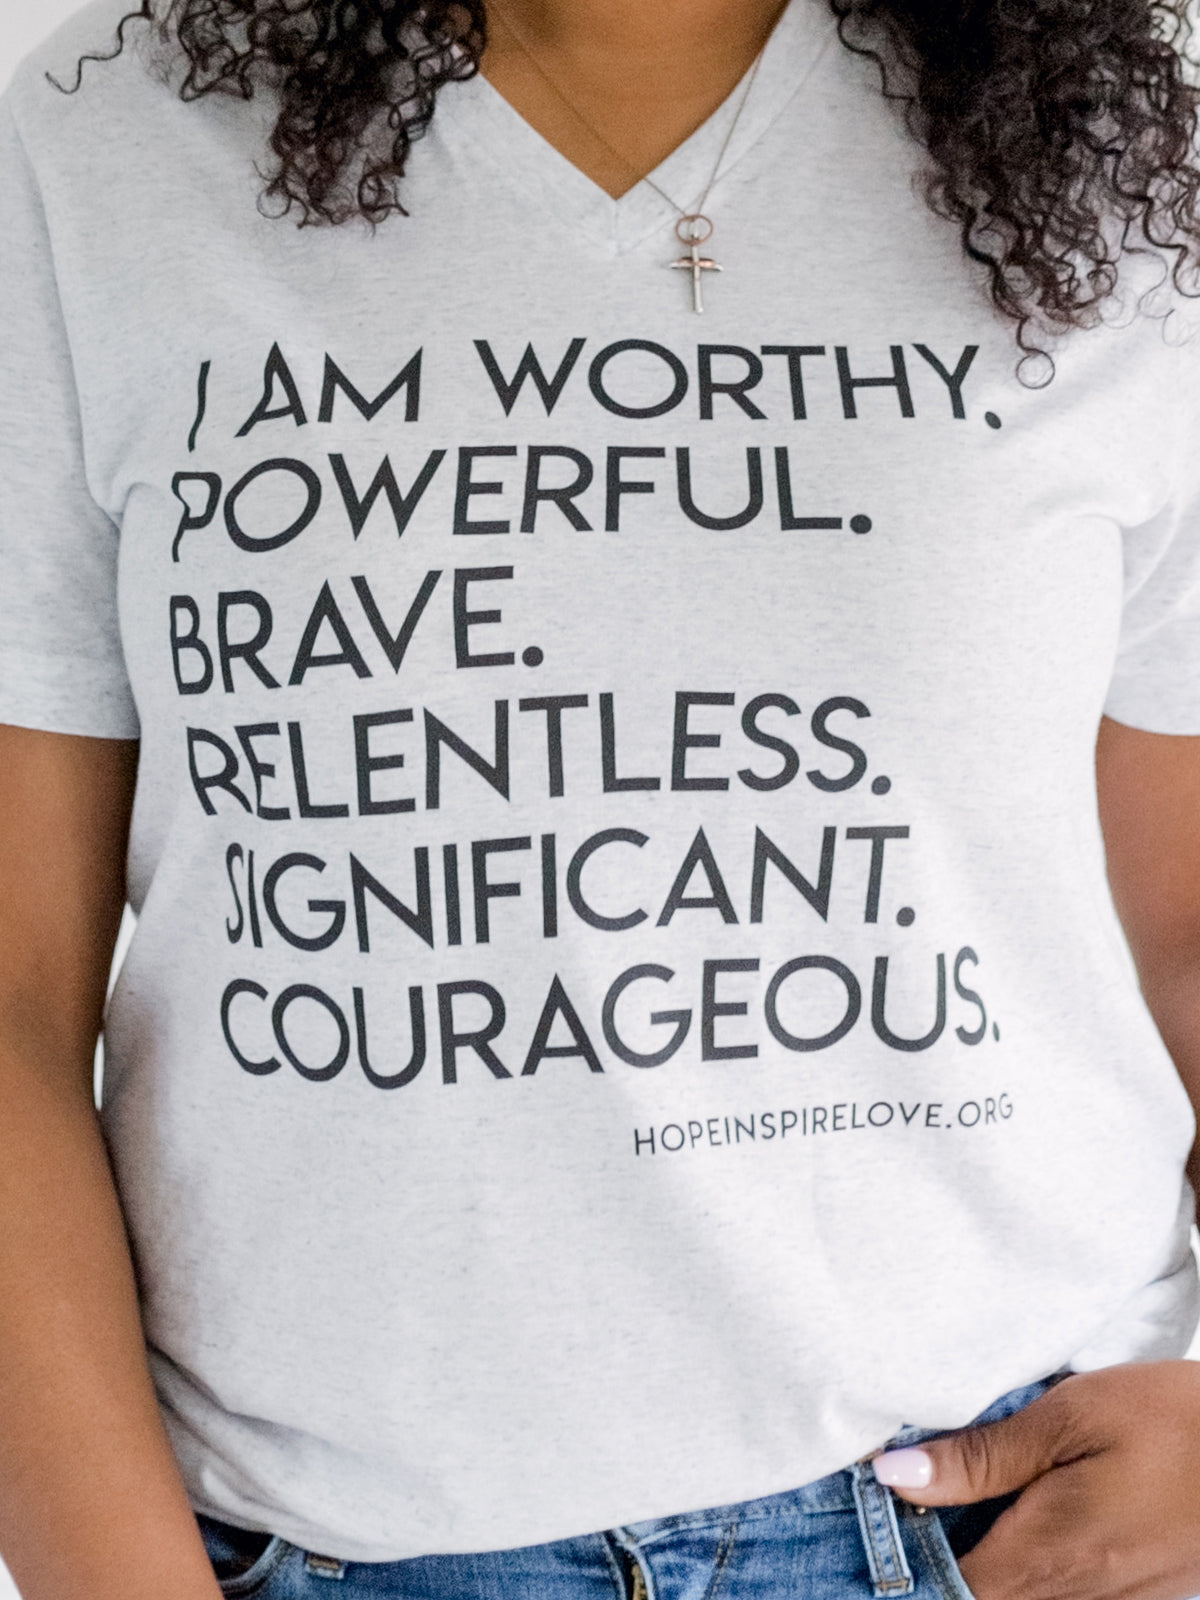 I AM WORTHY - White Short Sleeve T-Shirt